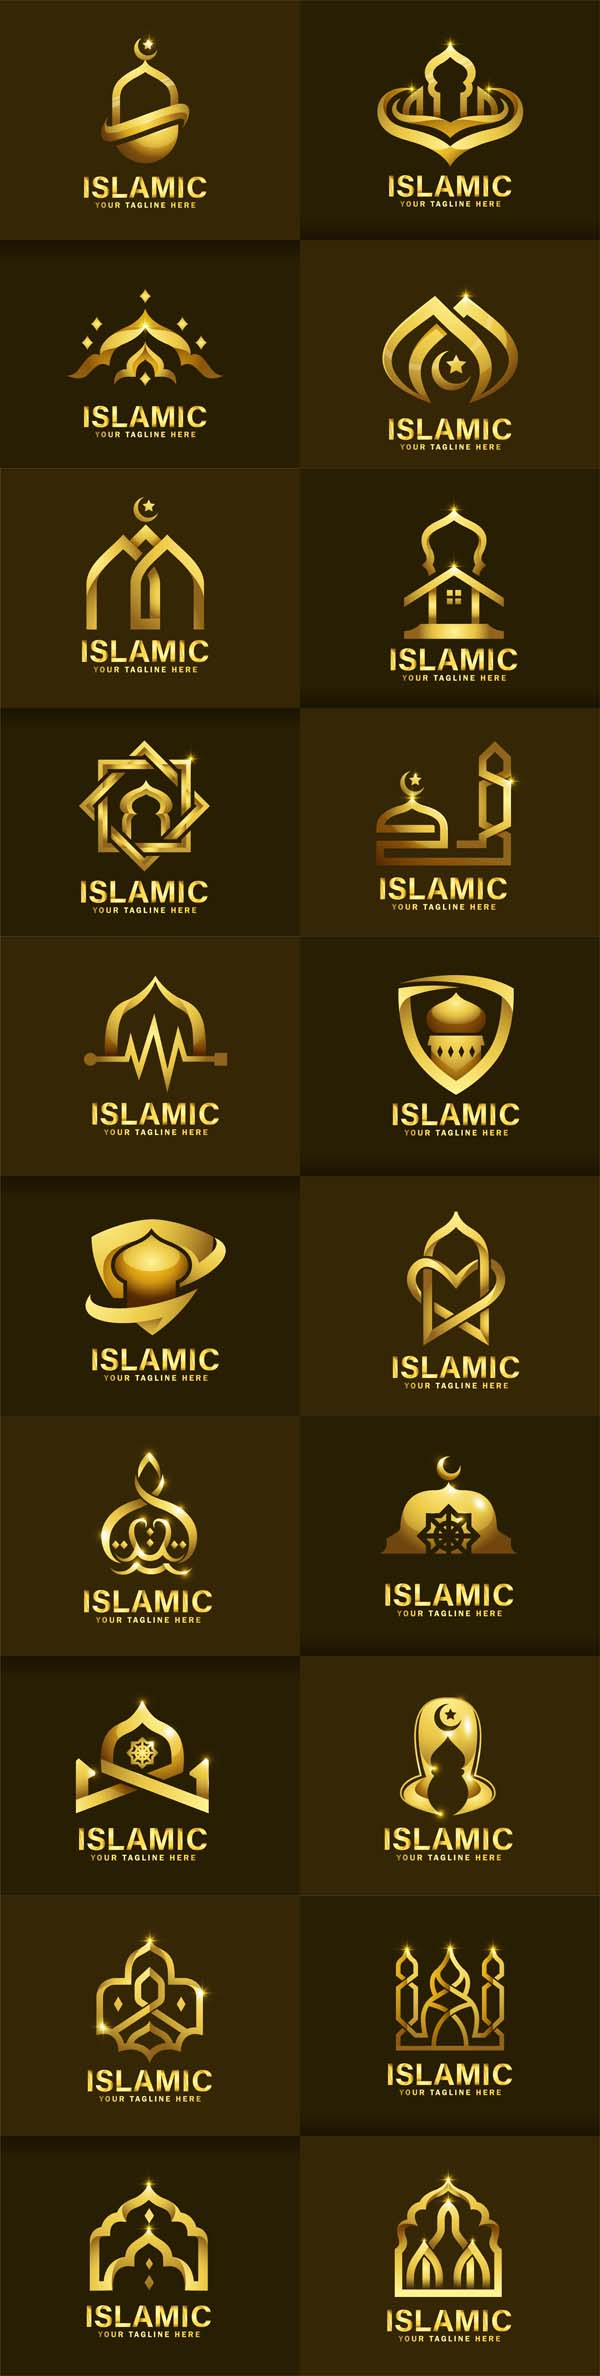 Luxurious Islamic Logo Vector Template